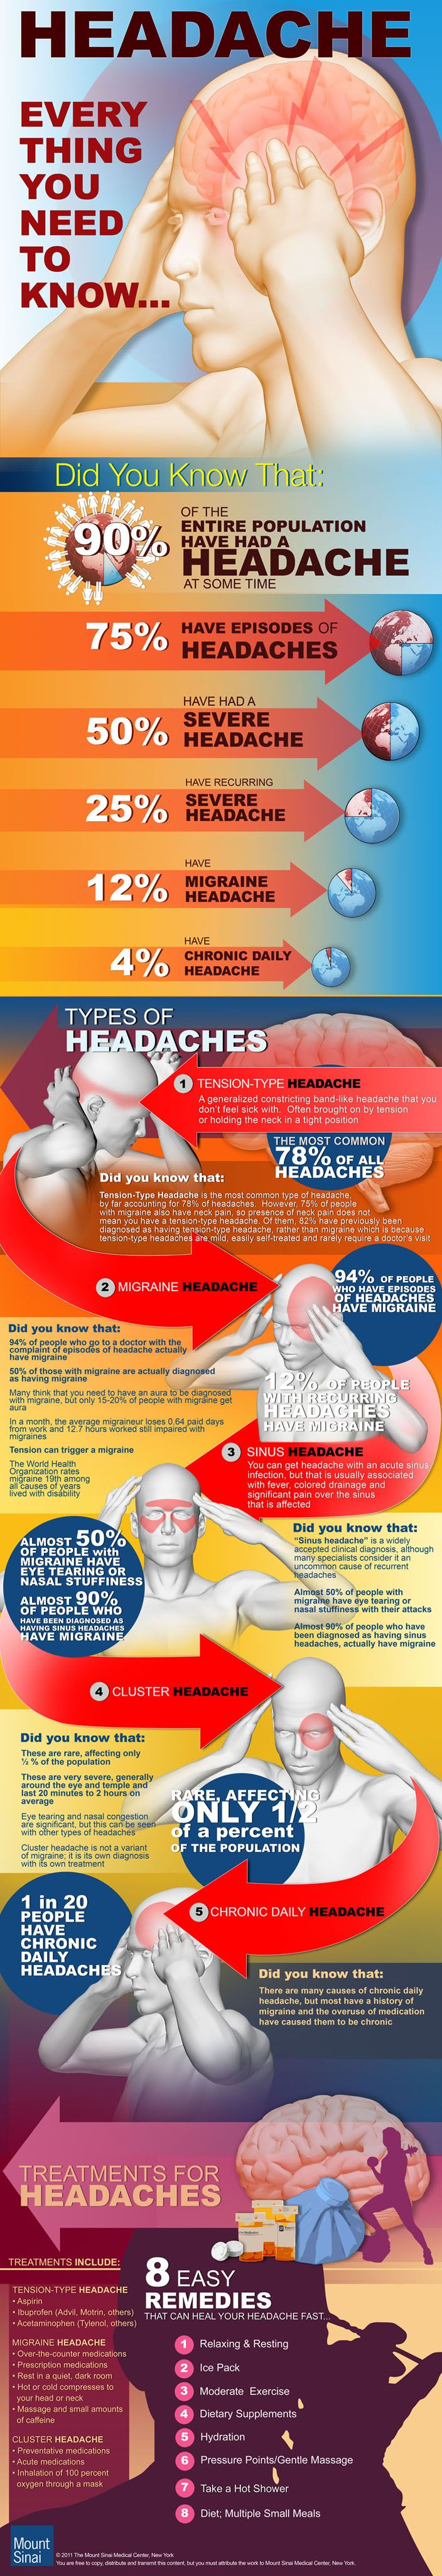 I agree with most of this.  One tension headache reliever we use here is dropping our jaw open, relieves the clenching tension and soon no more headache.